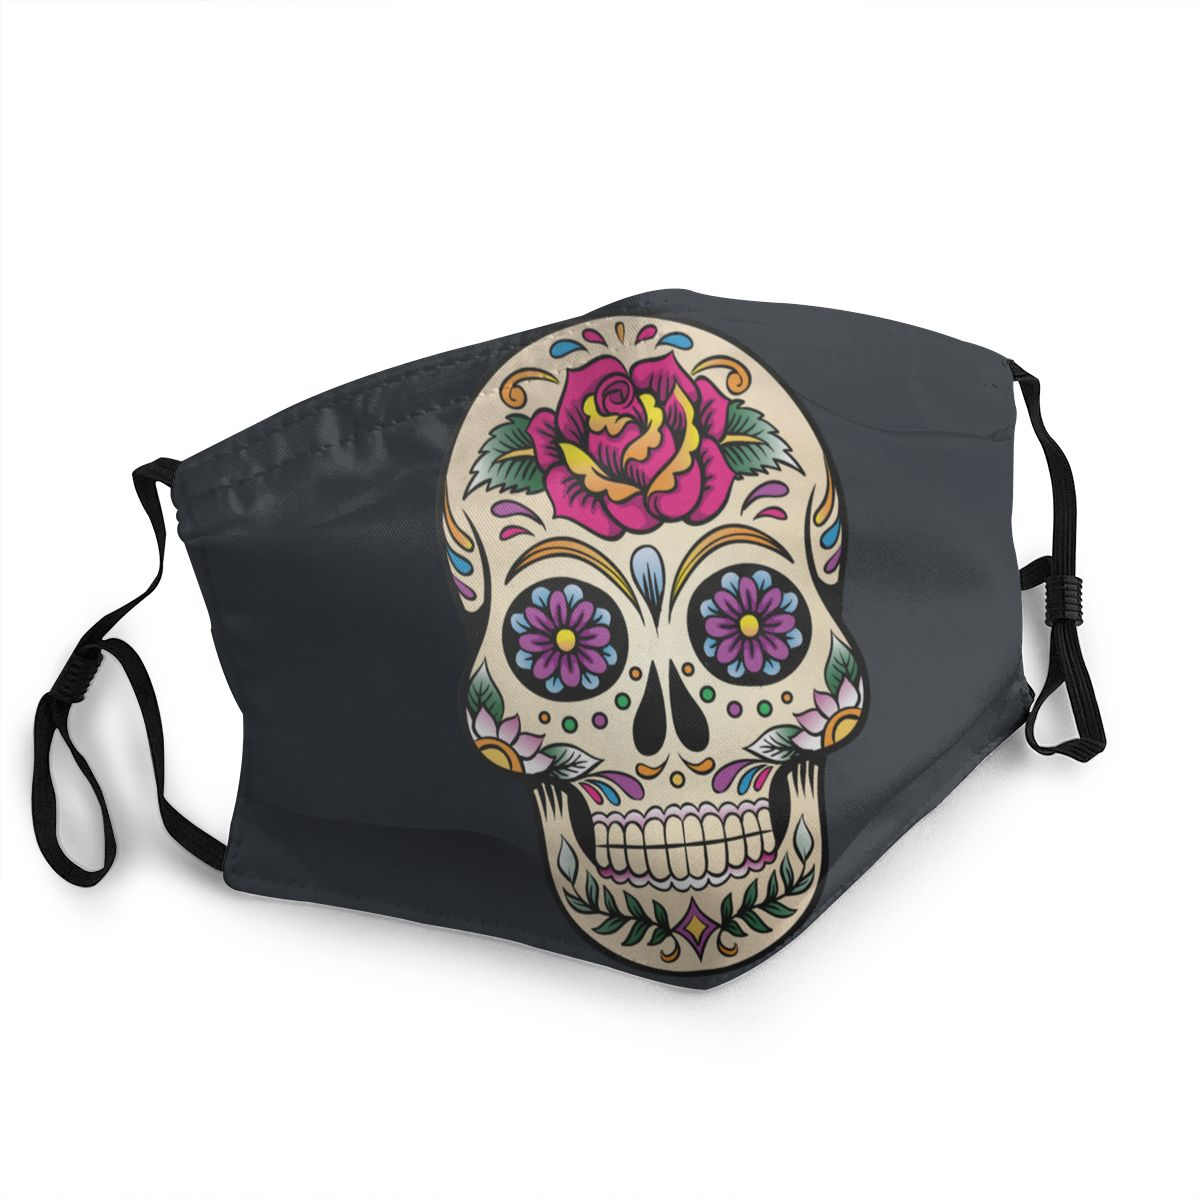 Day Of The Dead Sugar Skull Reusable Mouth Face Mask Printed Anti Bacterial Dustproof Protection Mask Respirator Mouth Muffle